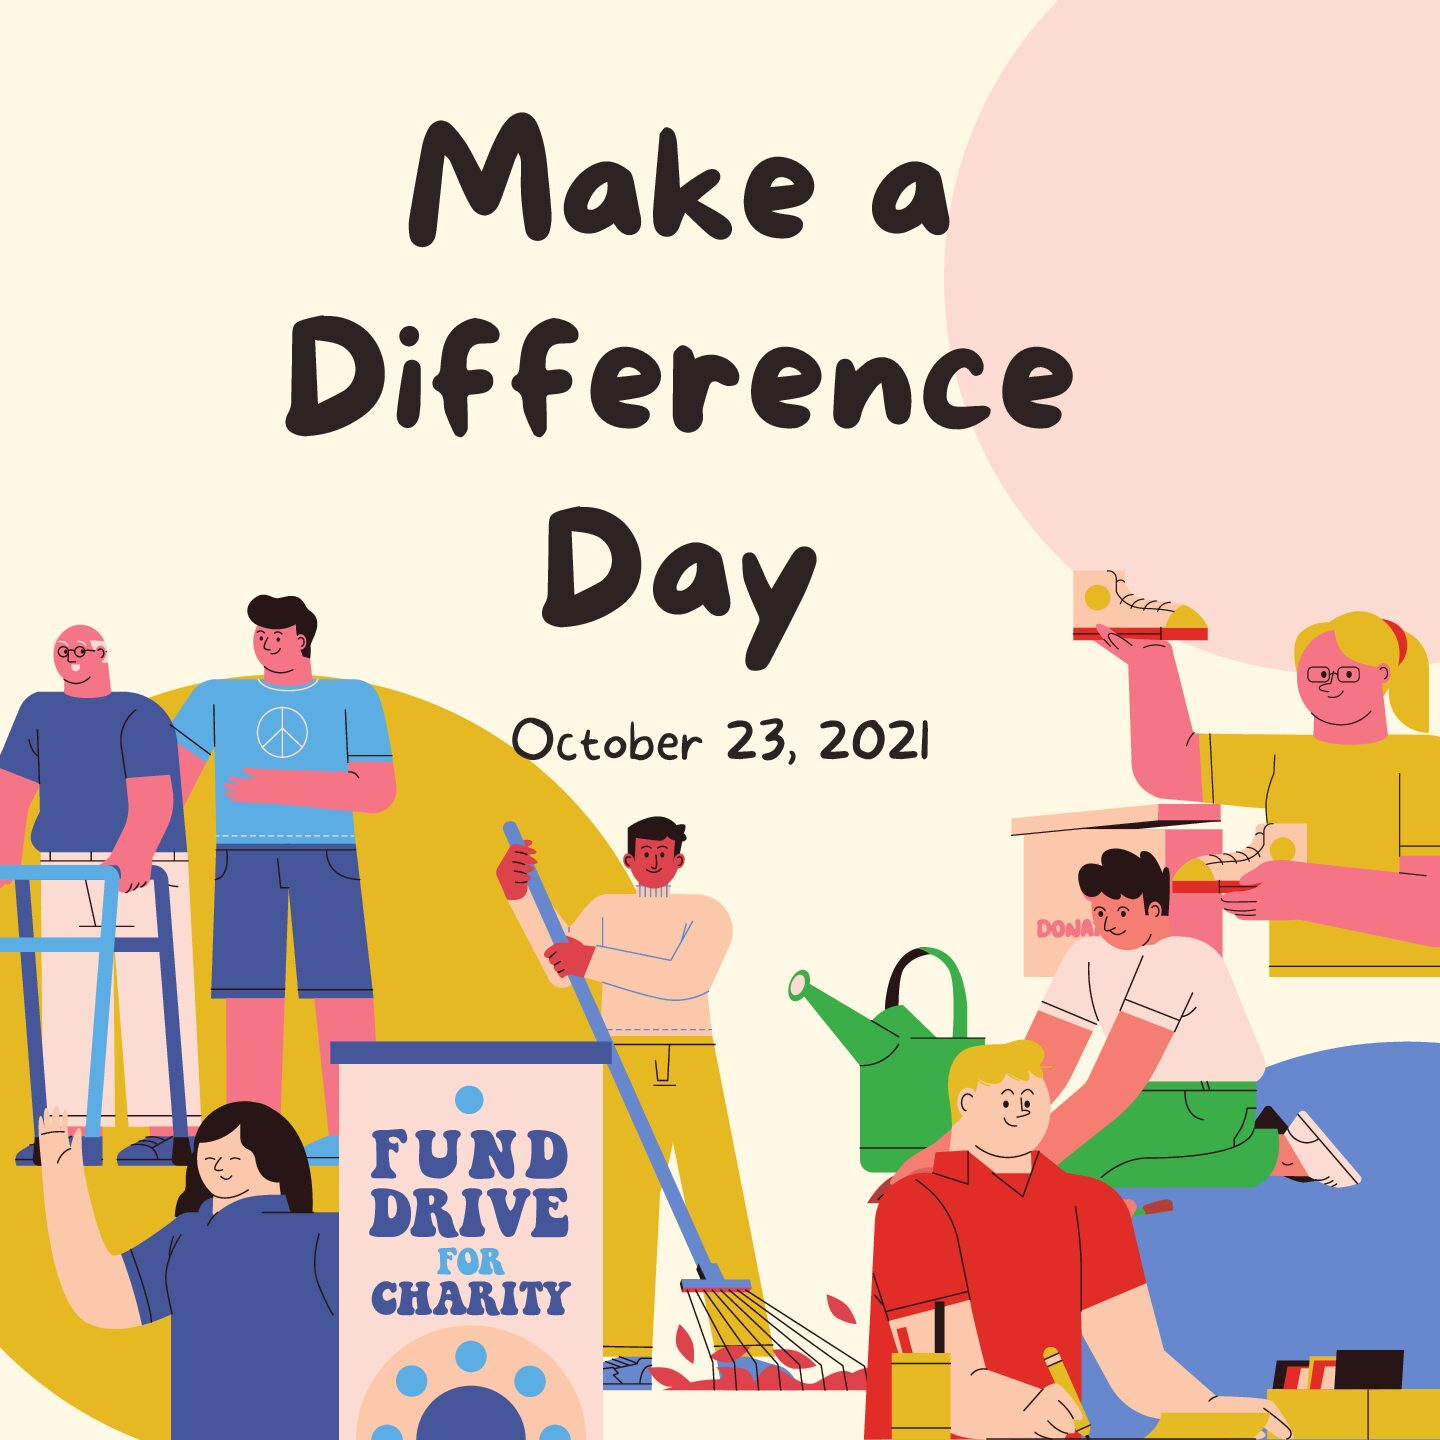 Make a Difference Day is on Oct. 23. Making a difference, whether it is a change for yourself or a change for a community, is essential for growth as a person. What kind of a difference are you making? Image via Canva - Serene Tarabishi